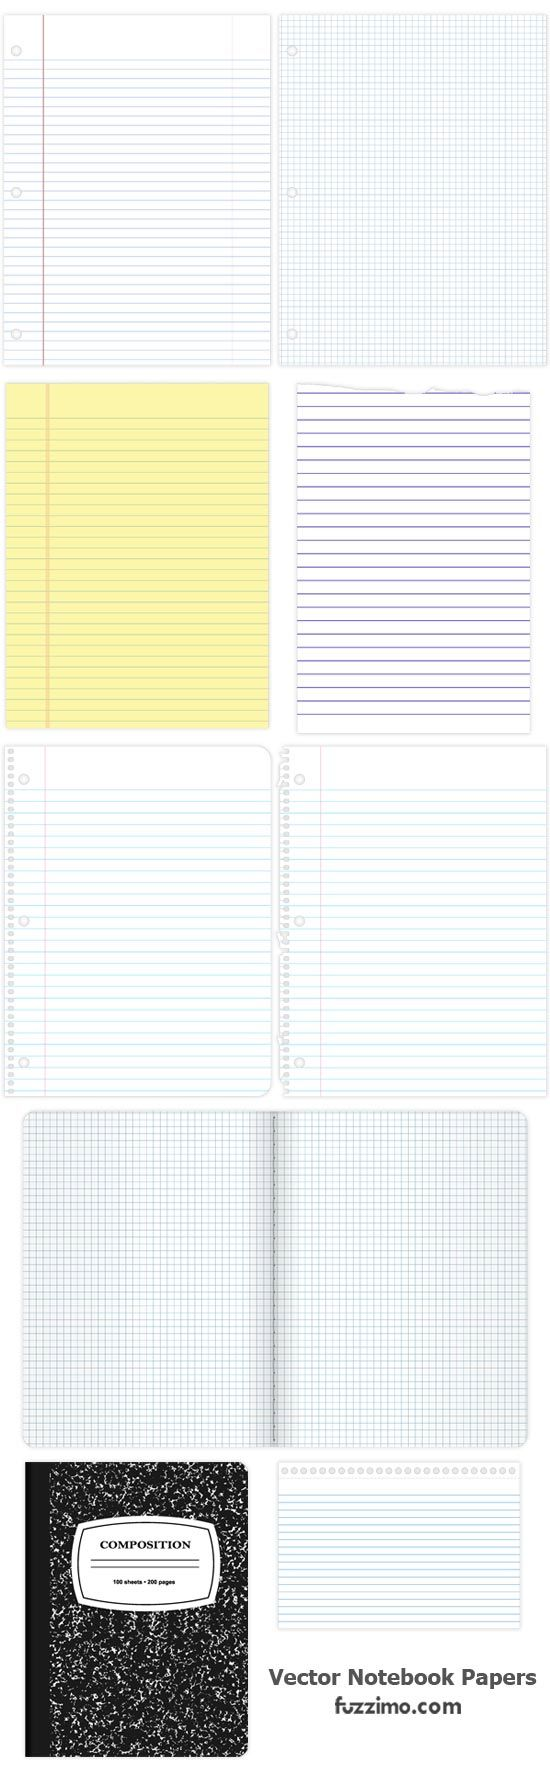 This lettersized lined paper is college ruled in portrait – Four Ruled Paper